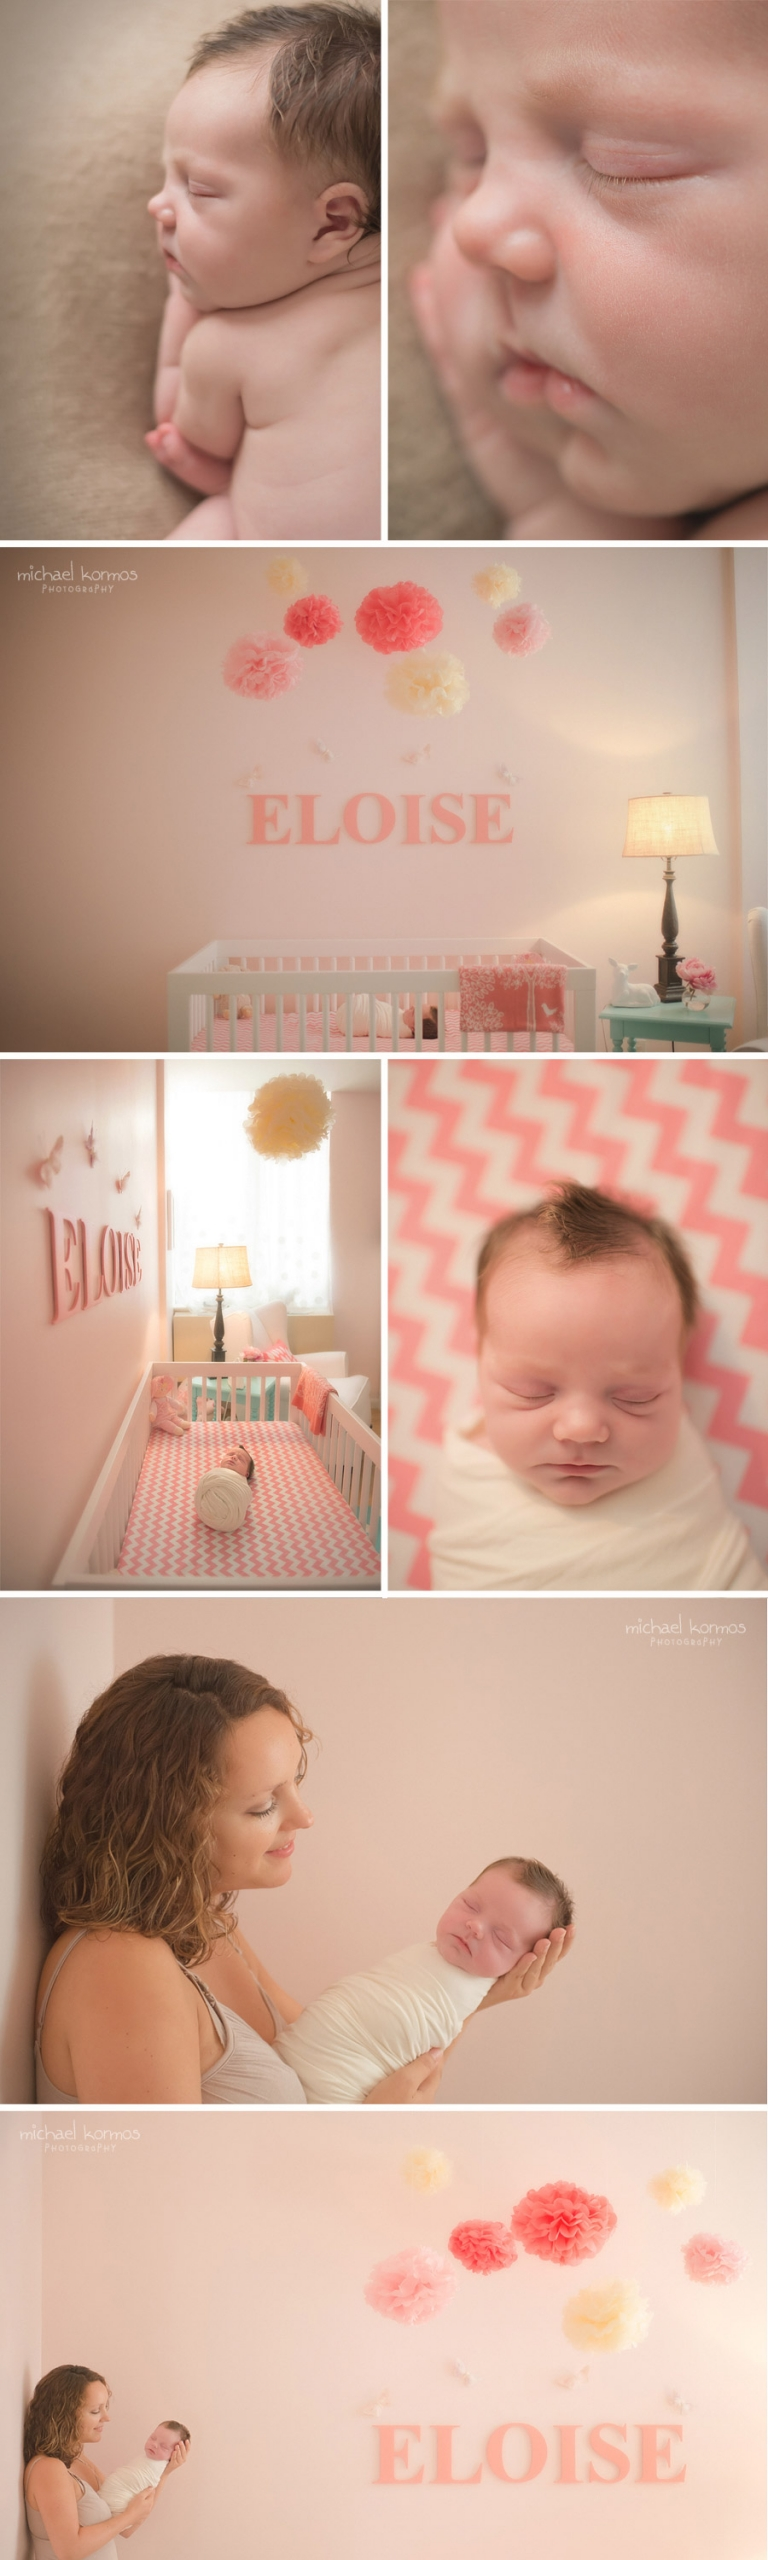 lifestyle newborn photography in coral turquoise nursery